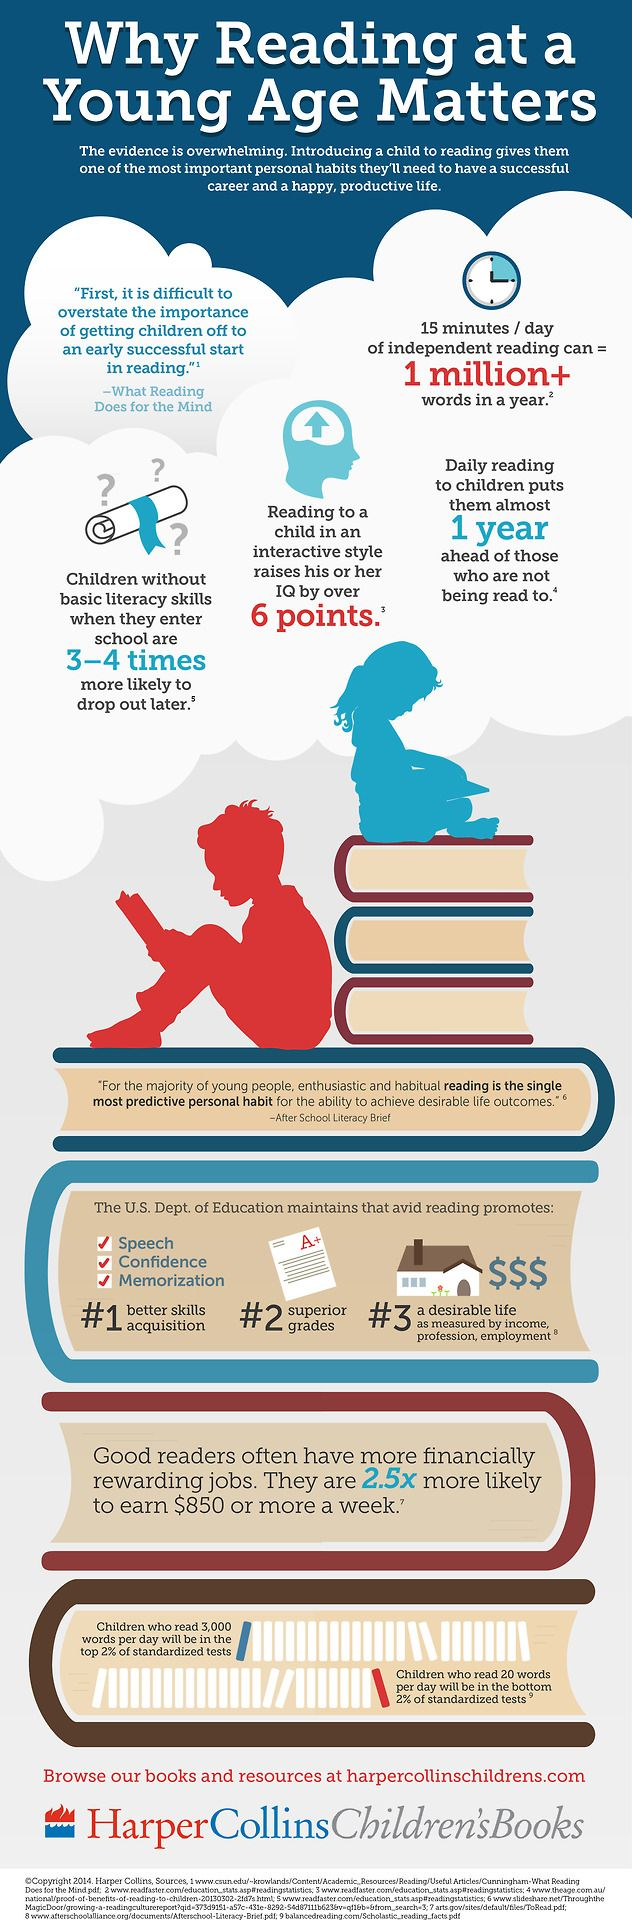 Why Reading at a Young Age Matters: http://hccbbooks.com/reasons-to-read-giveaway/Infographic.pdf